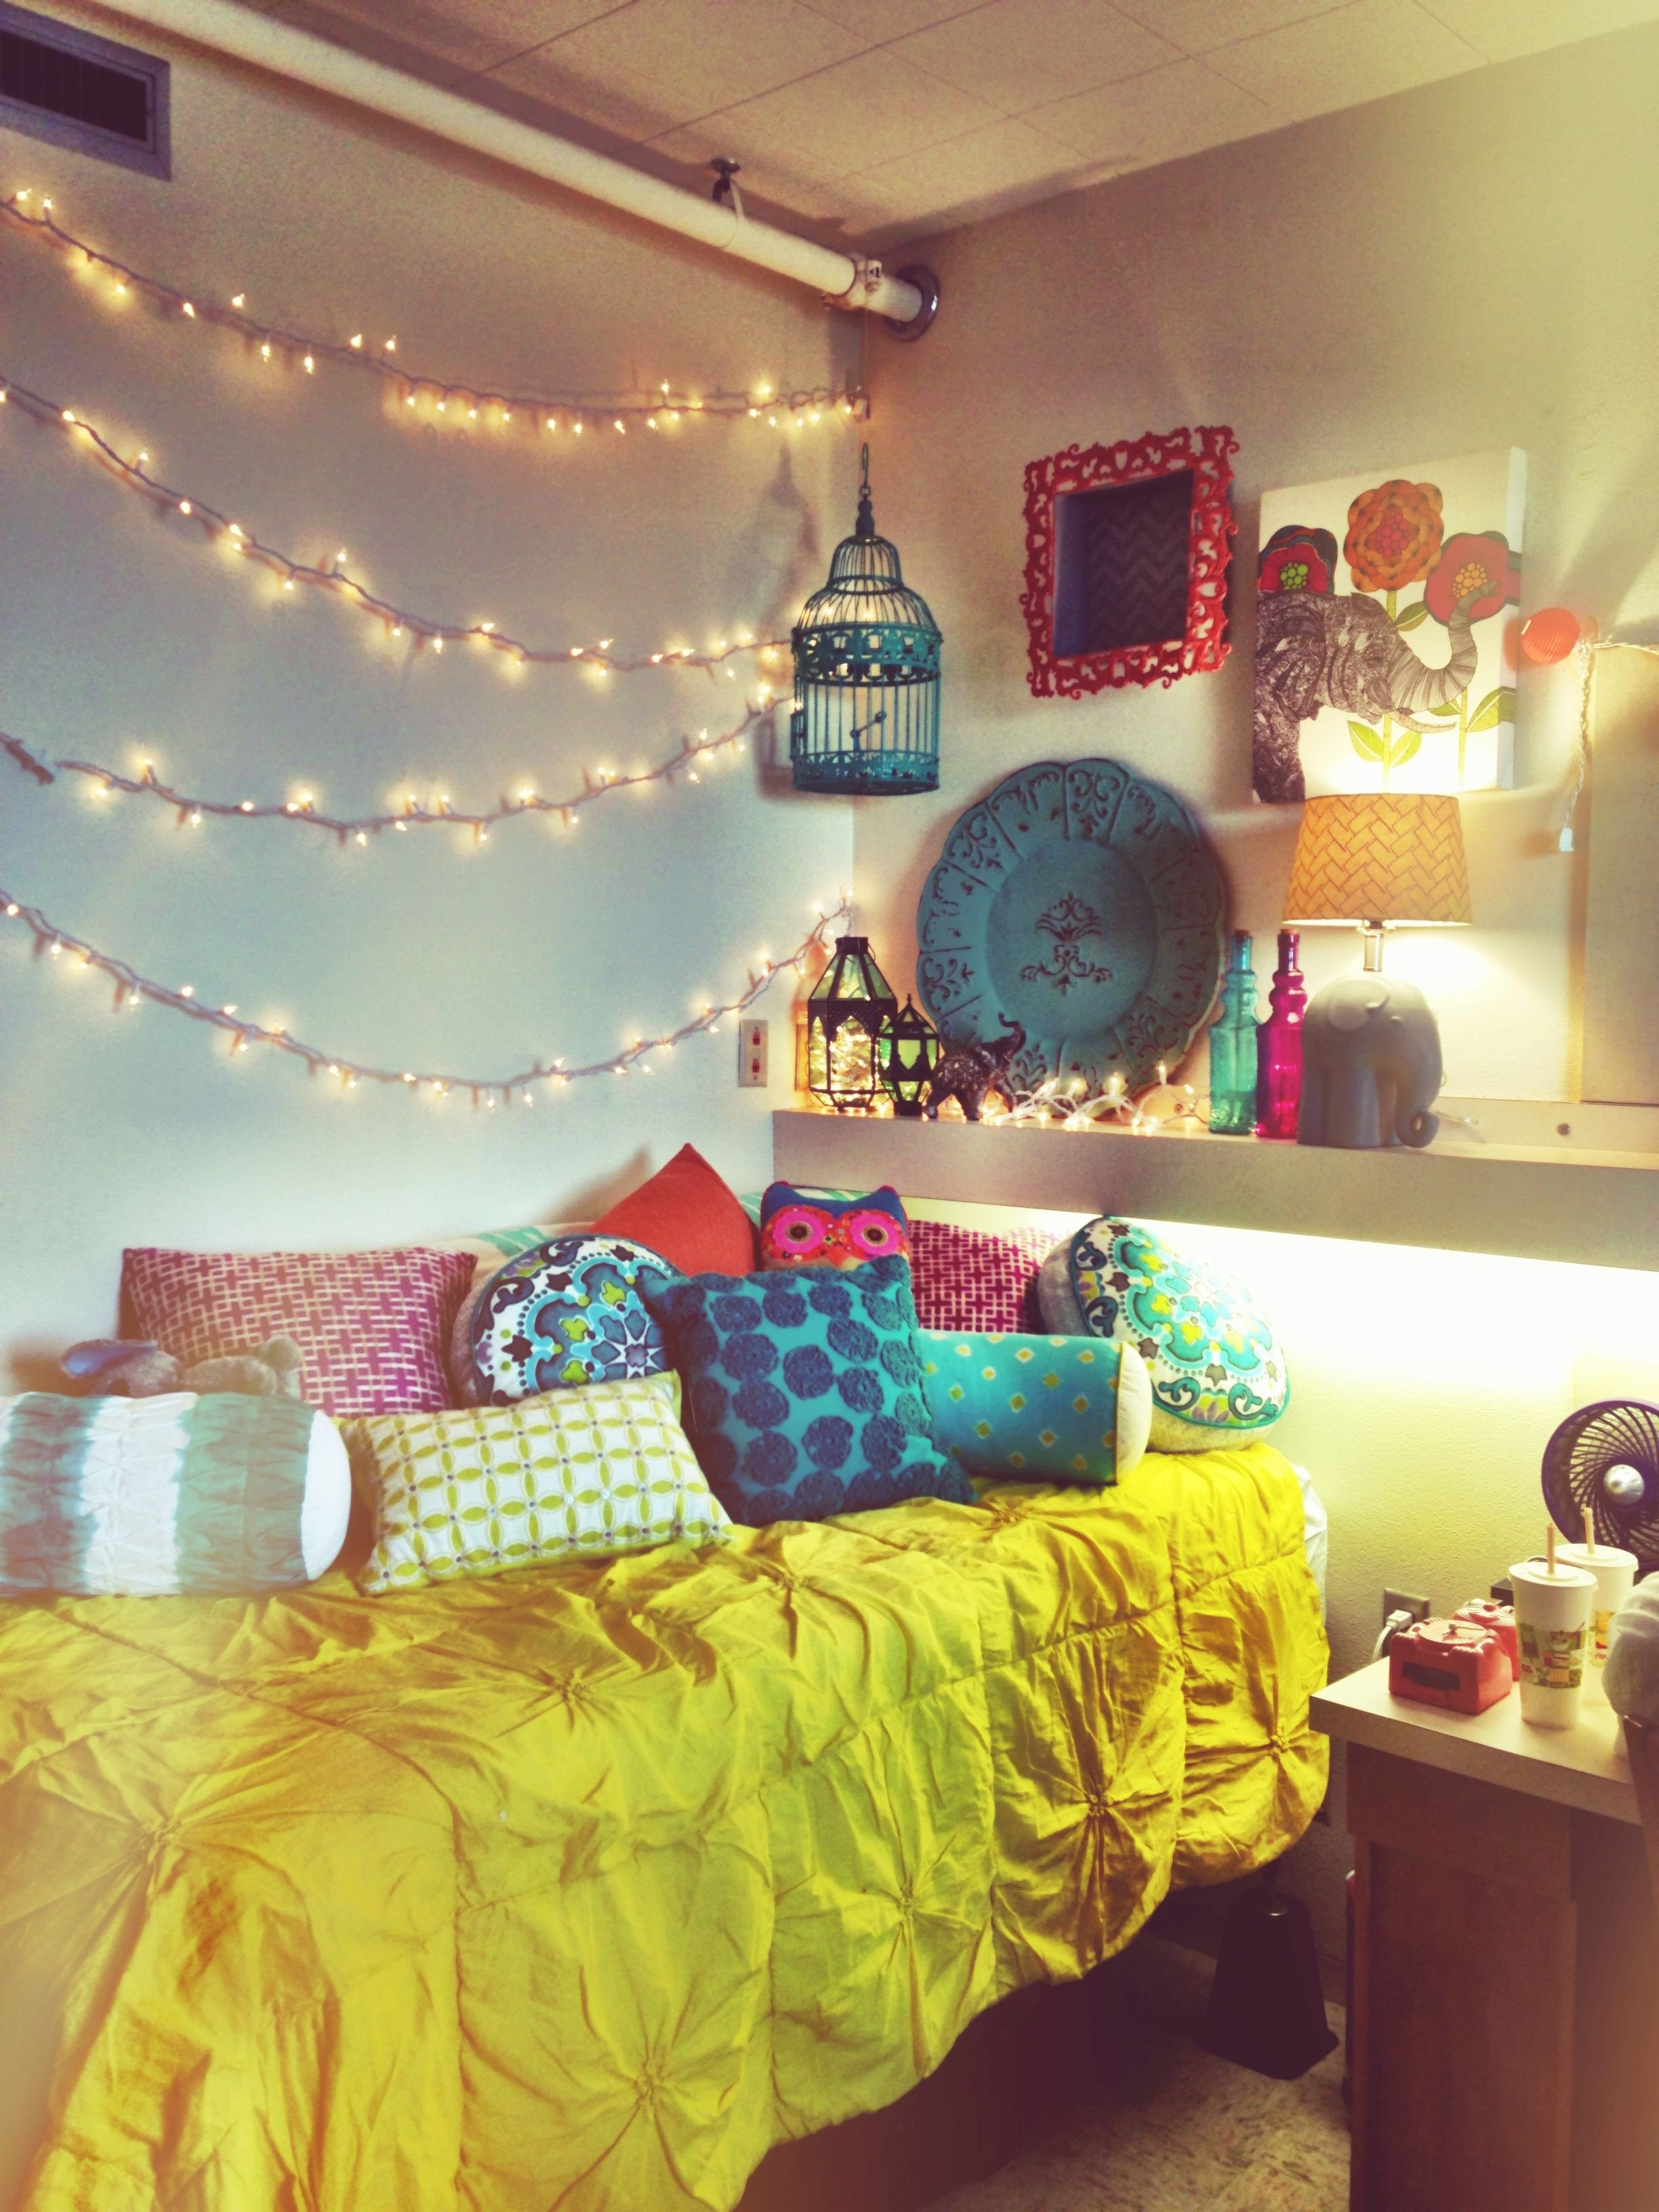 Twinkling Light for Bedroom Awesome Pin by Jessie Scheid On College or Bust Pinterest